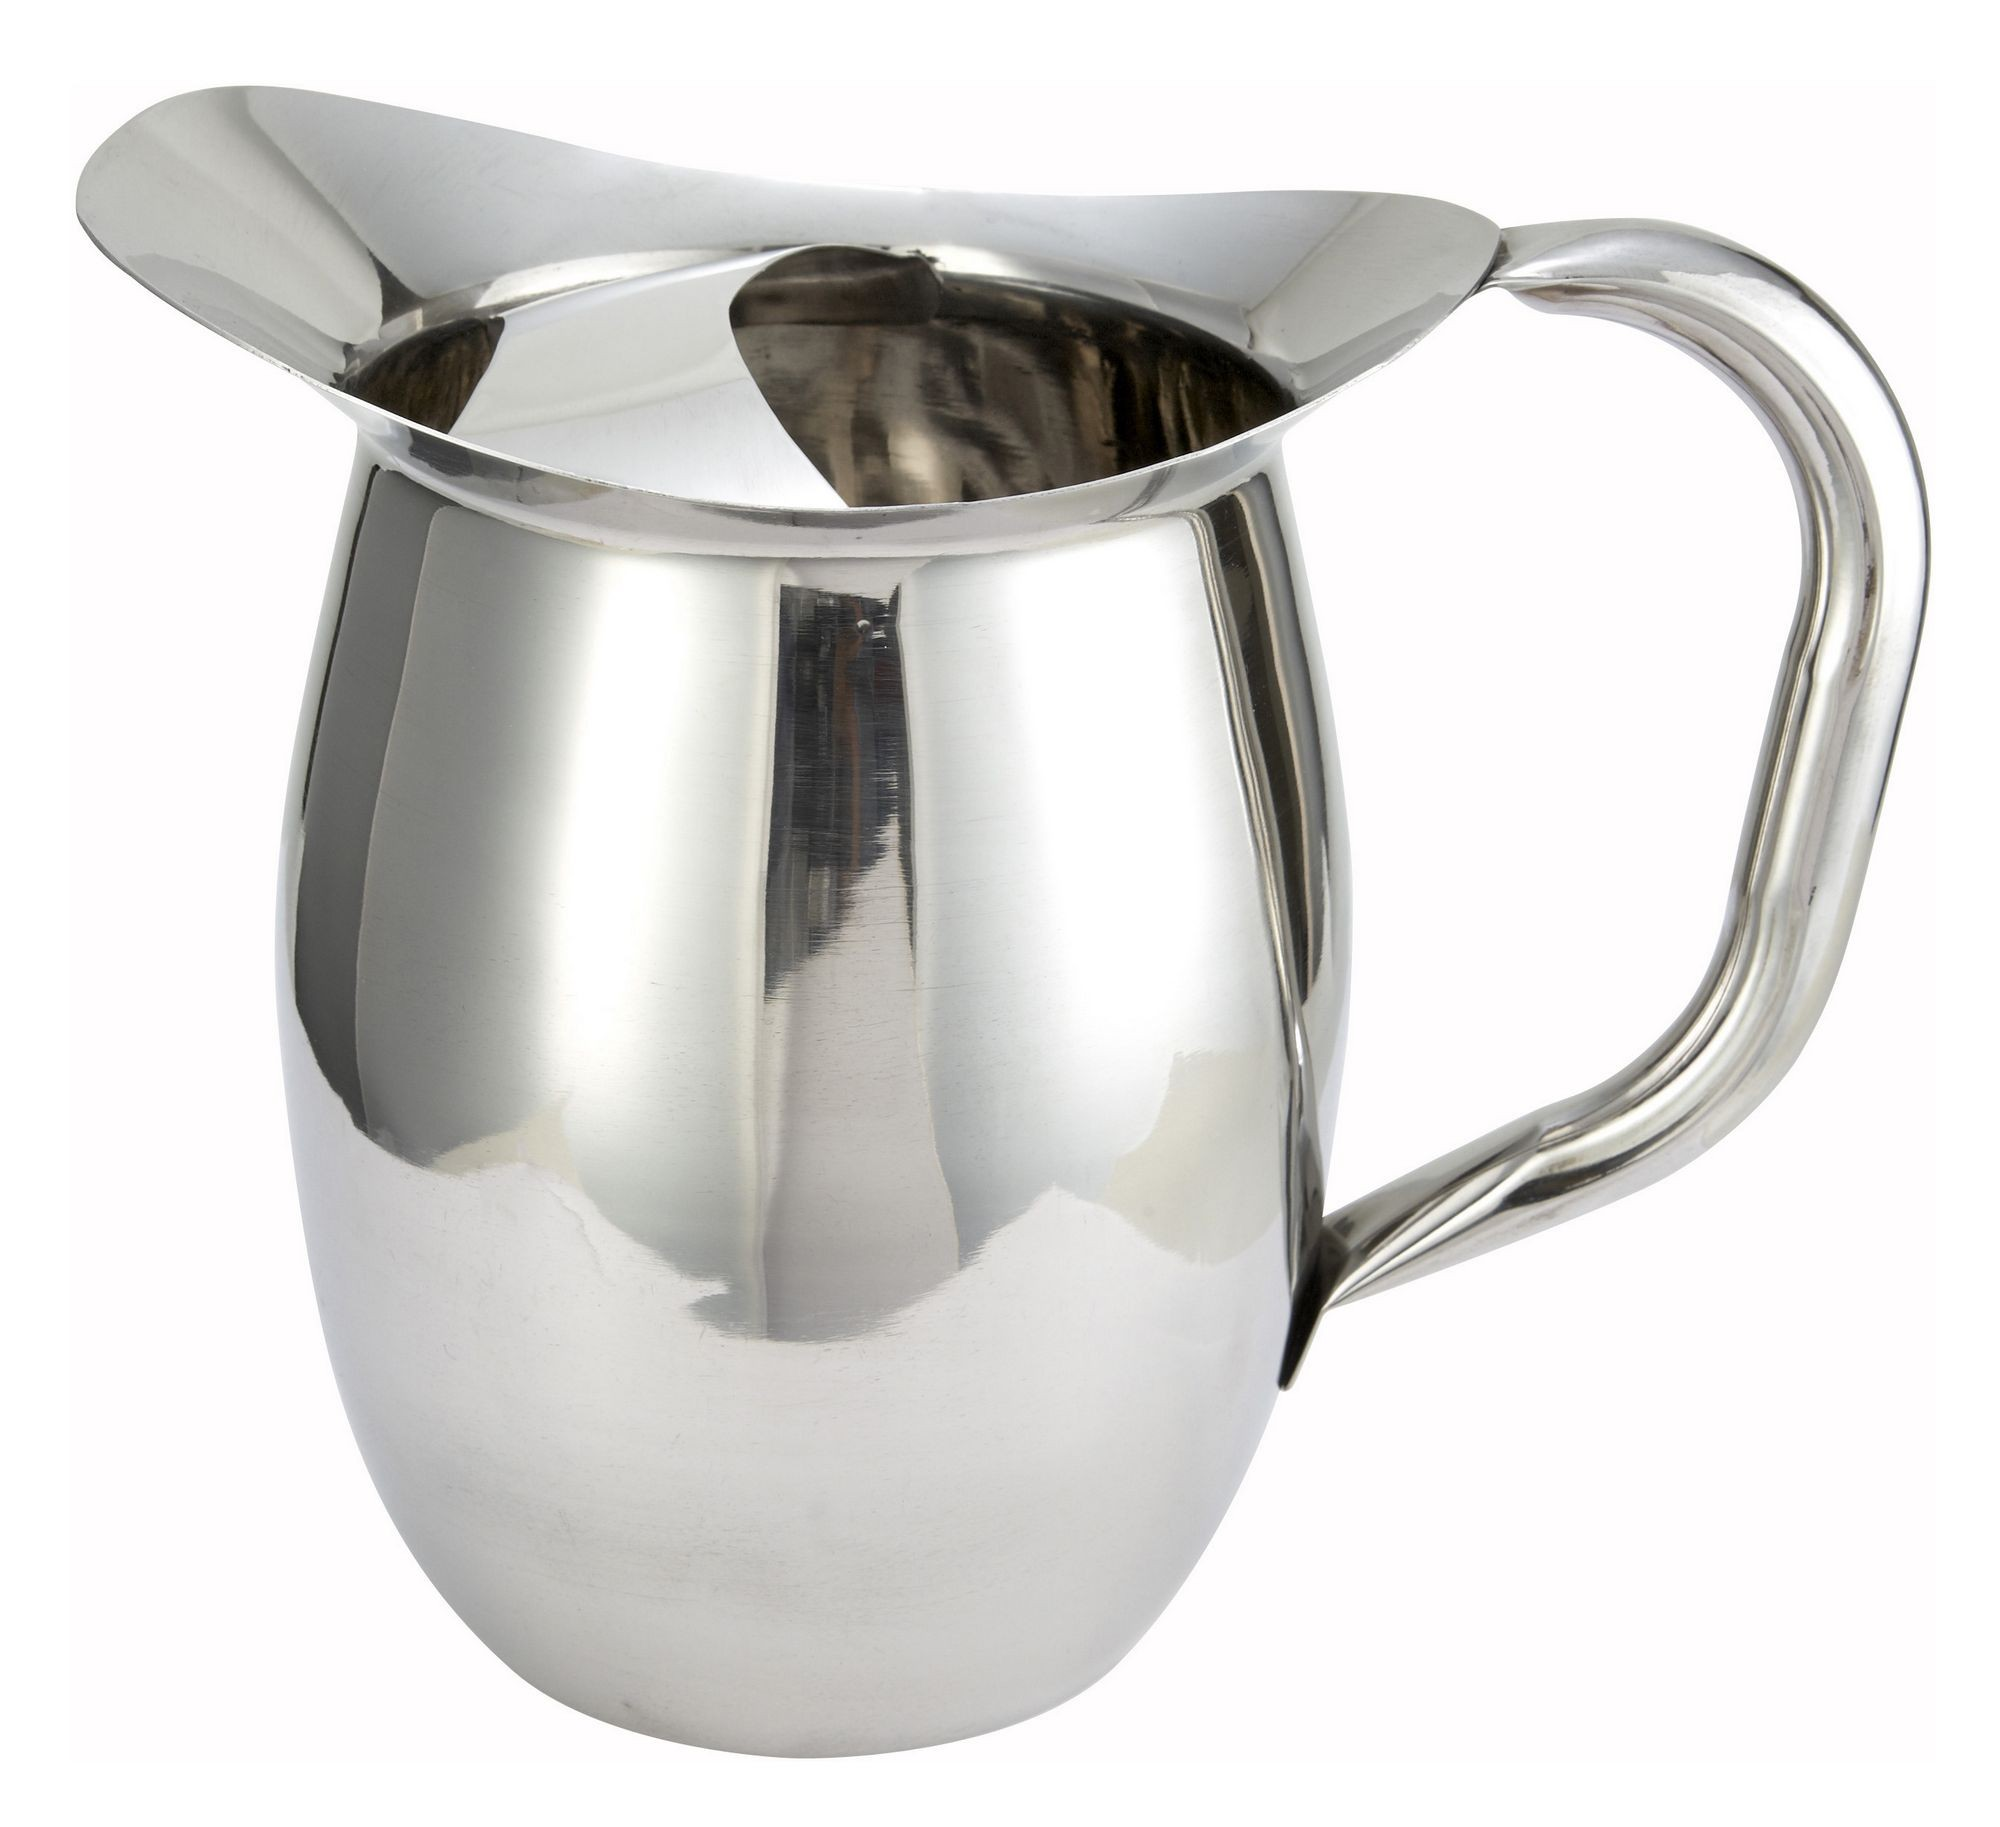 Winco wpb-3c Stainless Steel Deluxe 3 Qt. Bell Water Pitcher with Ice Catcher